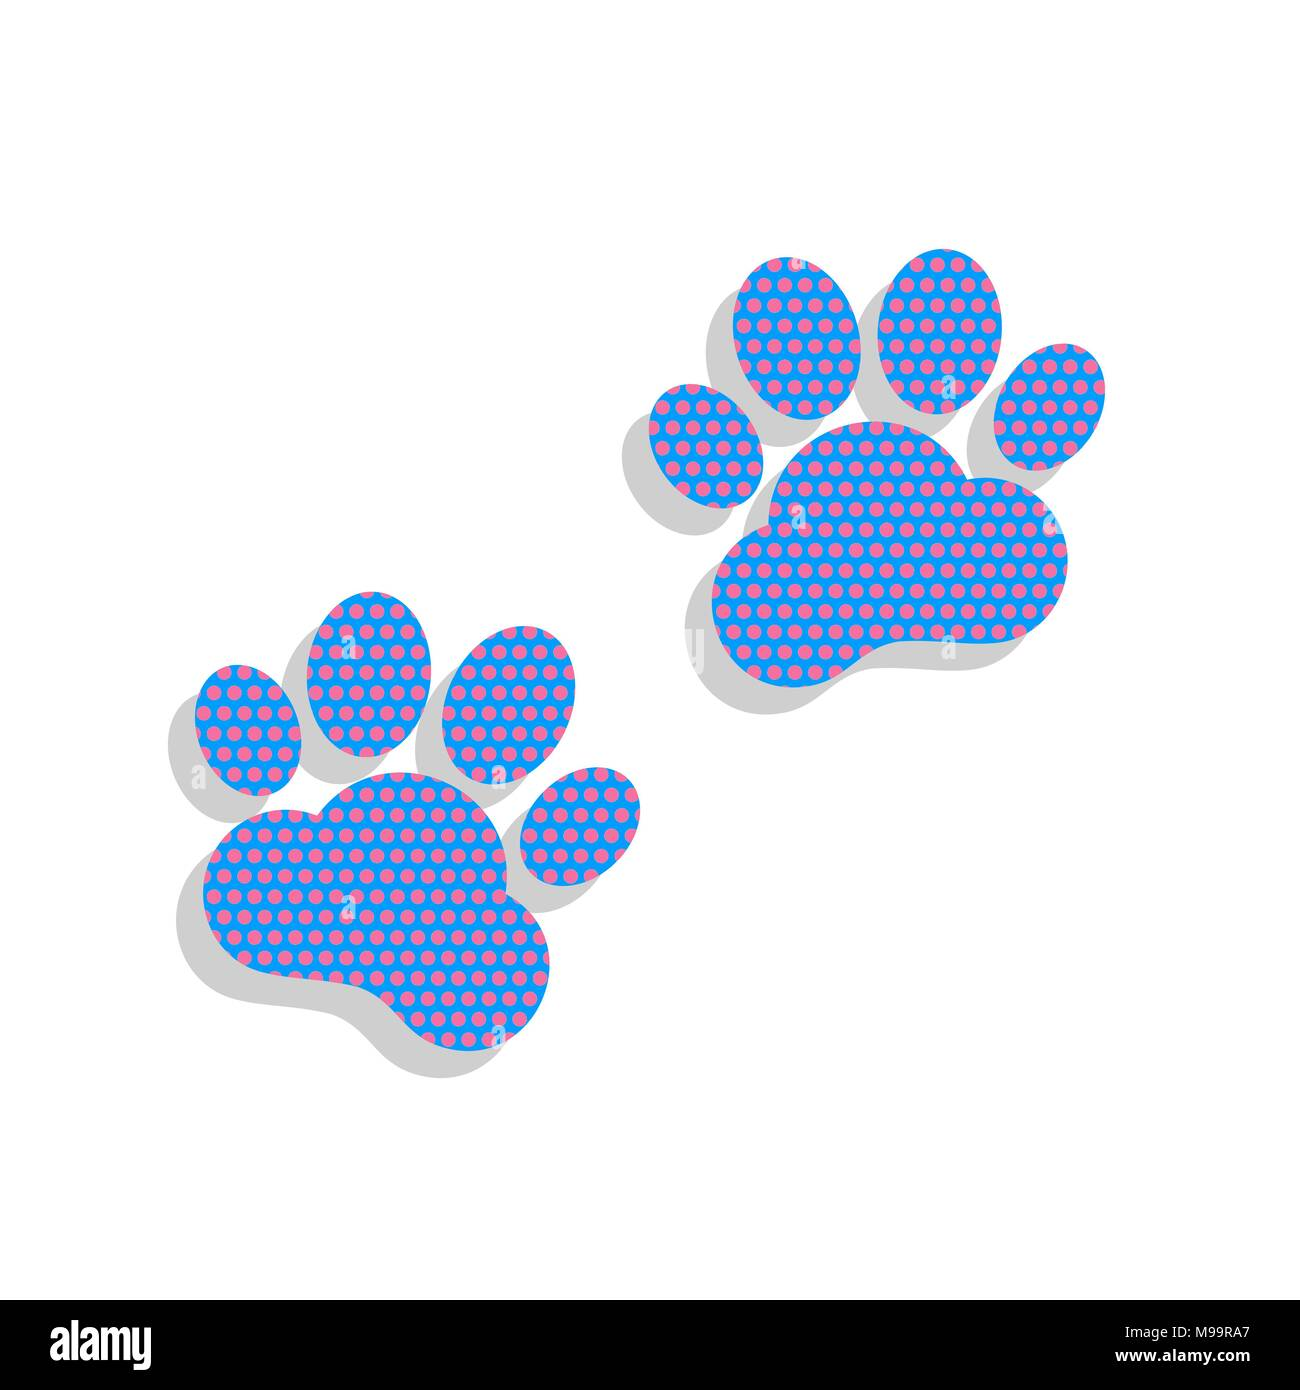 Animal Tracks sign. Vector. Neon blue icon with cyclamen polka dots pattern with light gray shadow on white background. Isolated. - Stock Image